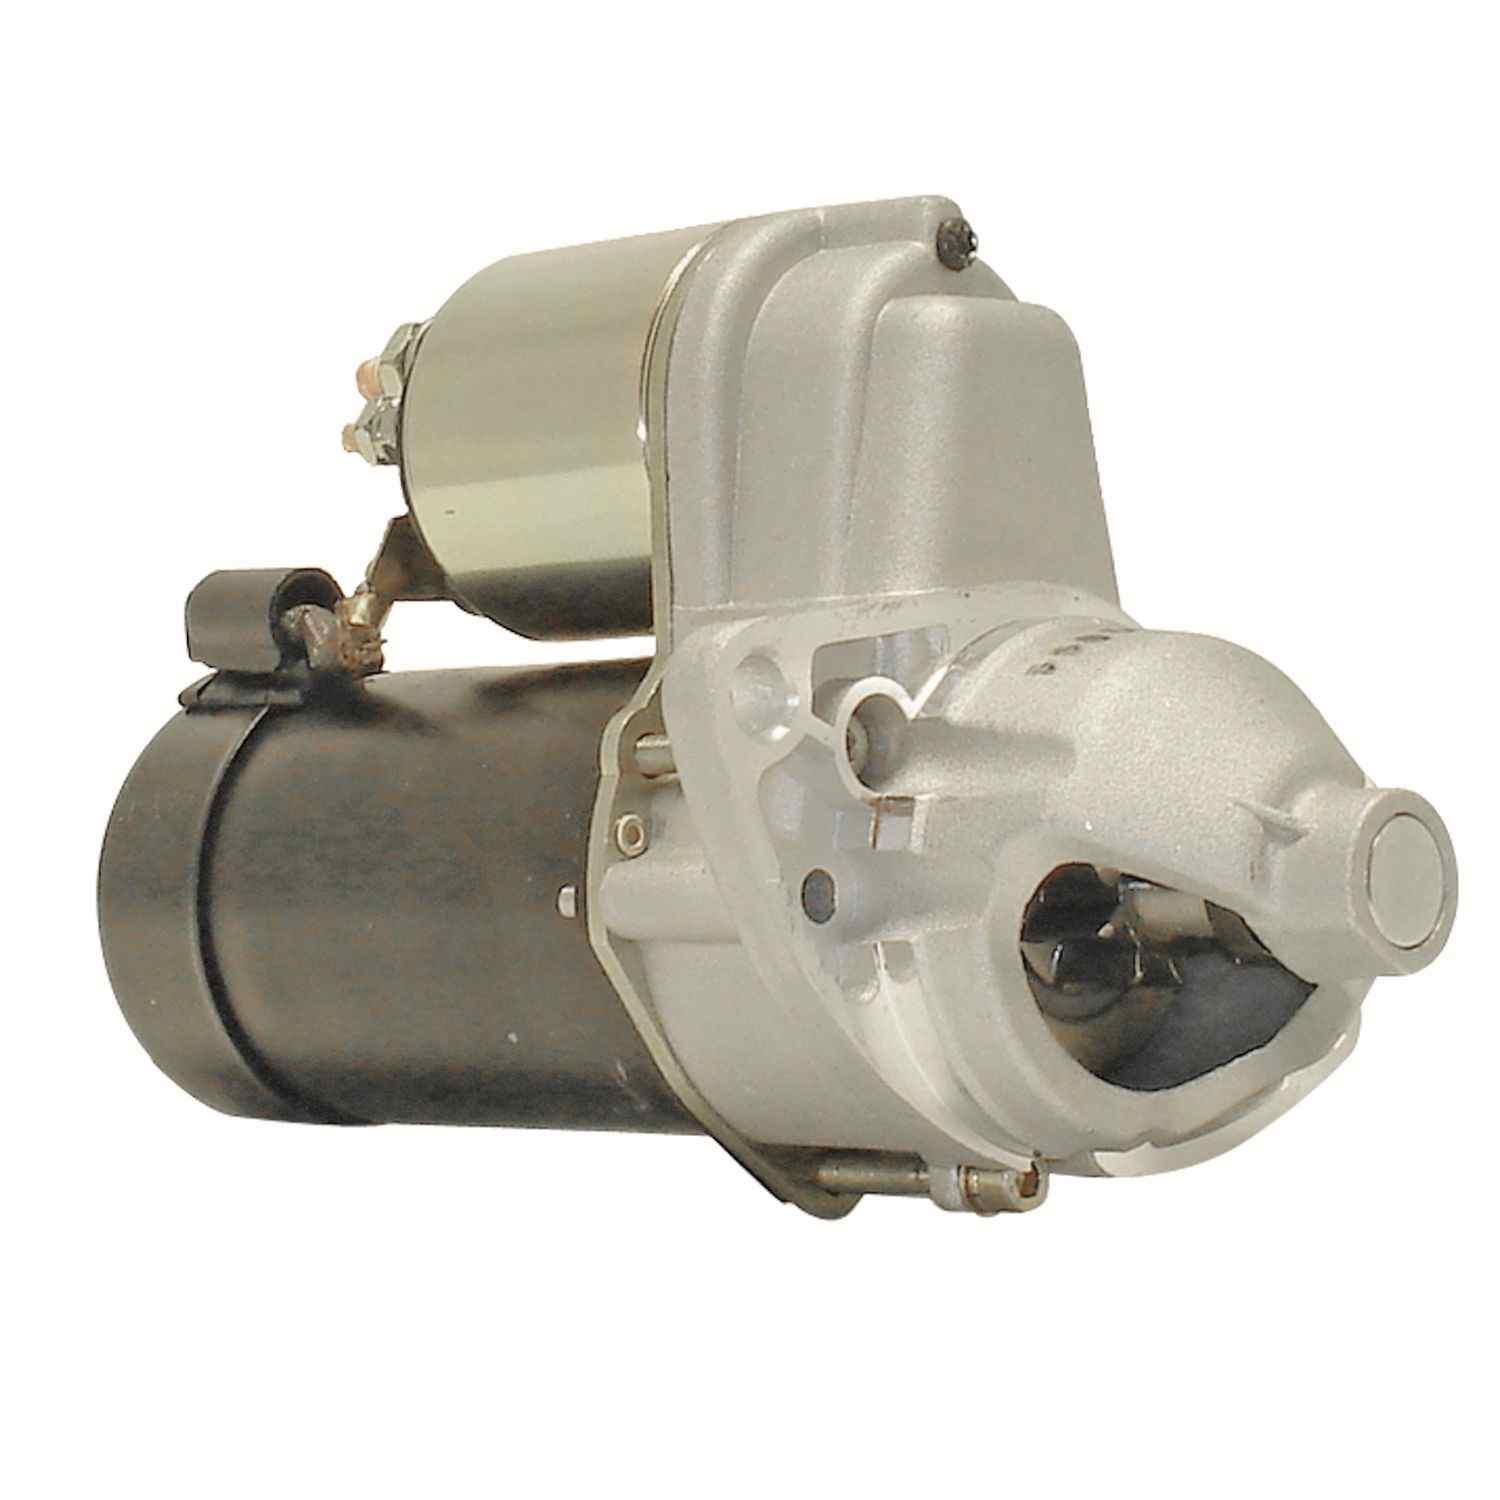 ACDELCO GOLD/PROFESSIONAL - Reman Starter Motor - DCC 336-1176A